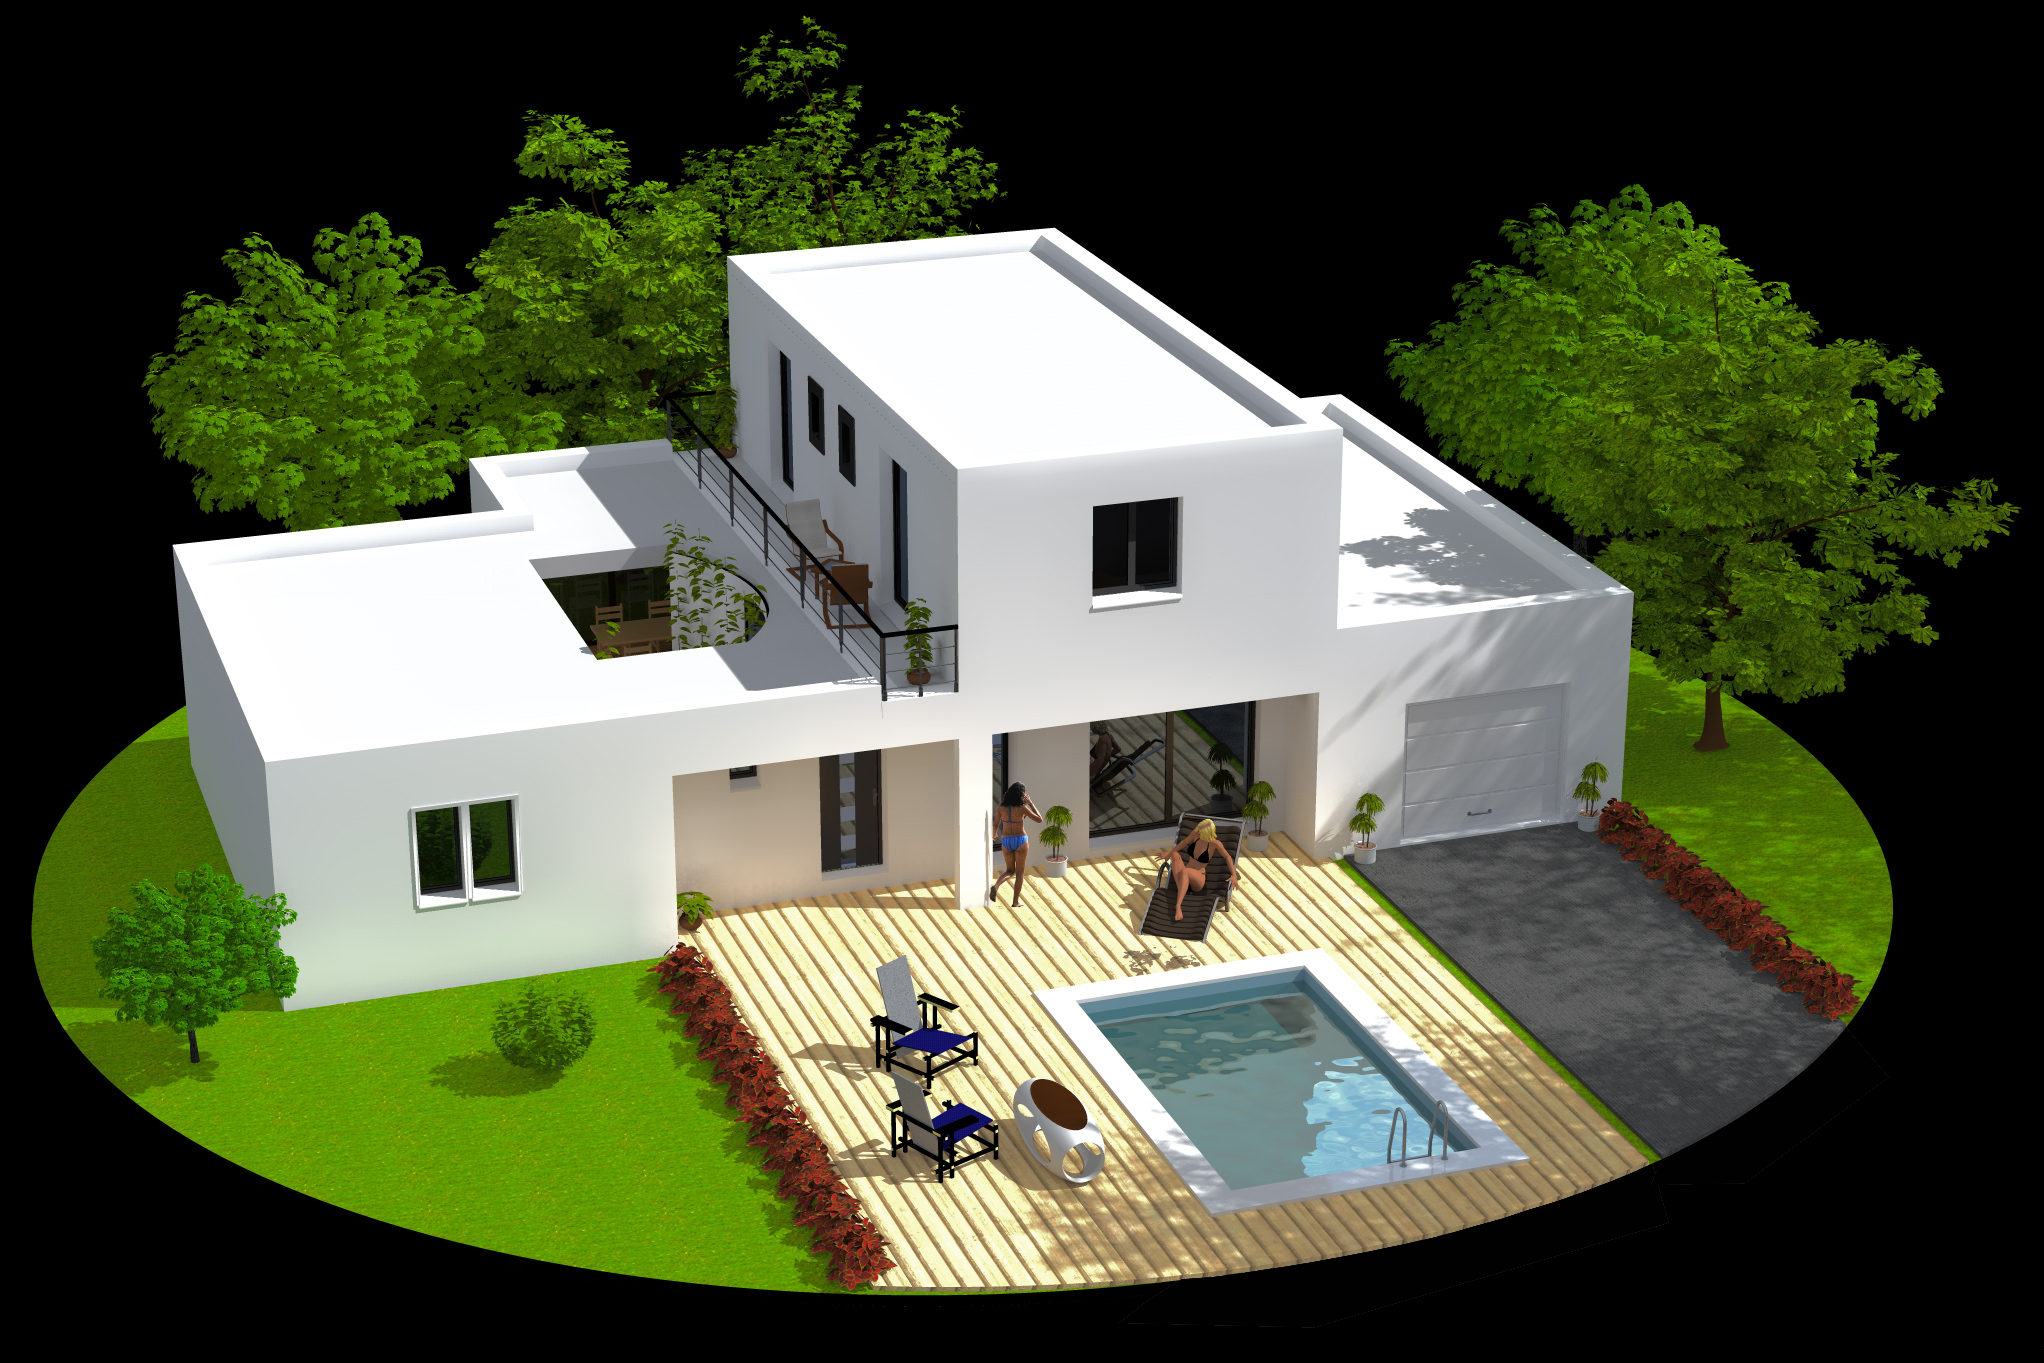 Plan maison en 3d l 39 impression 3d for Simulation construction maison 3d gratuit